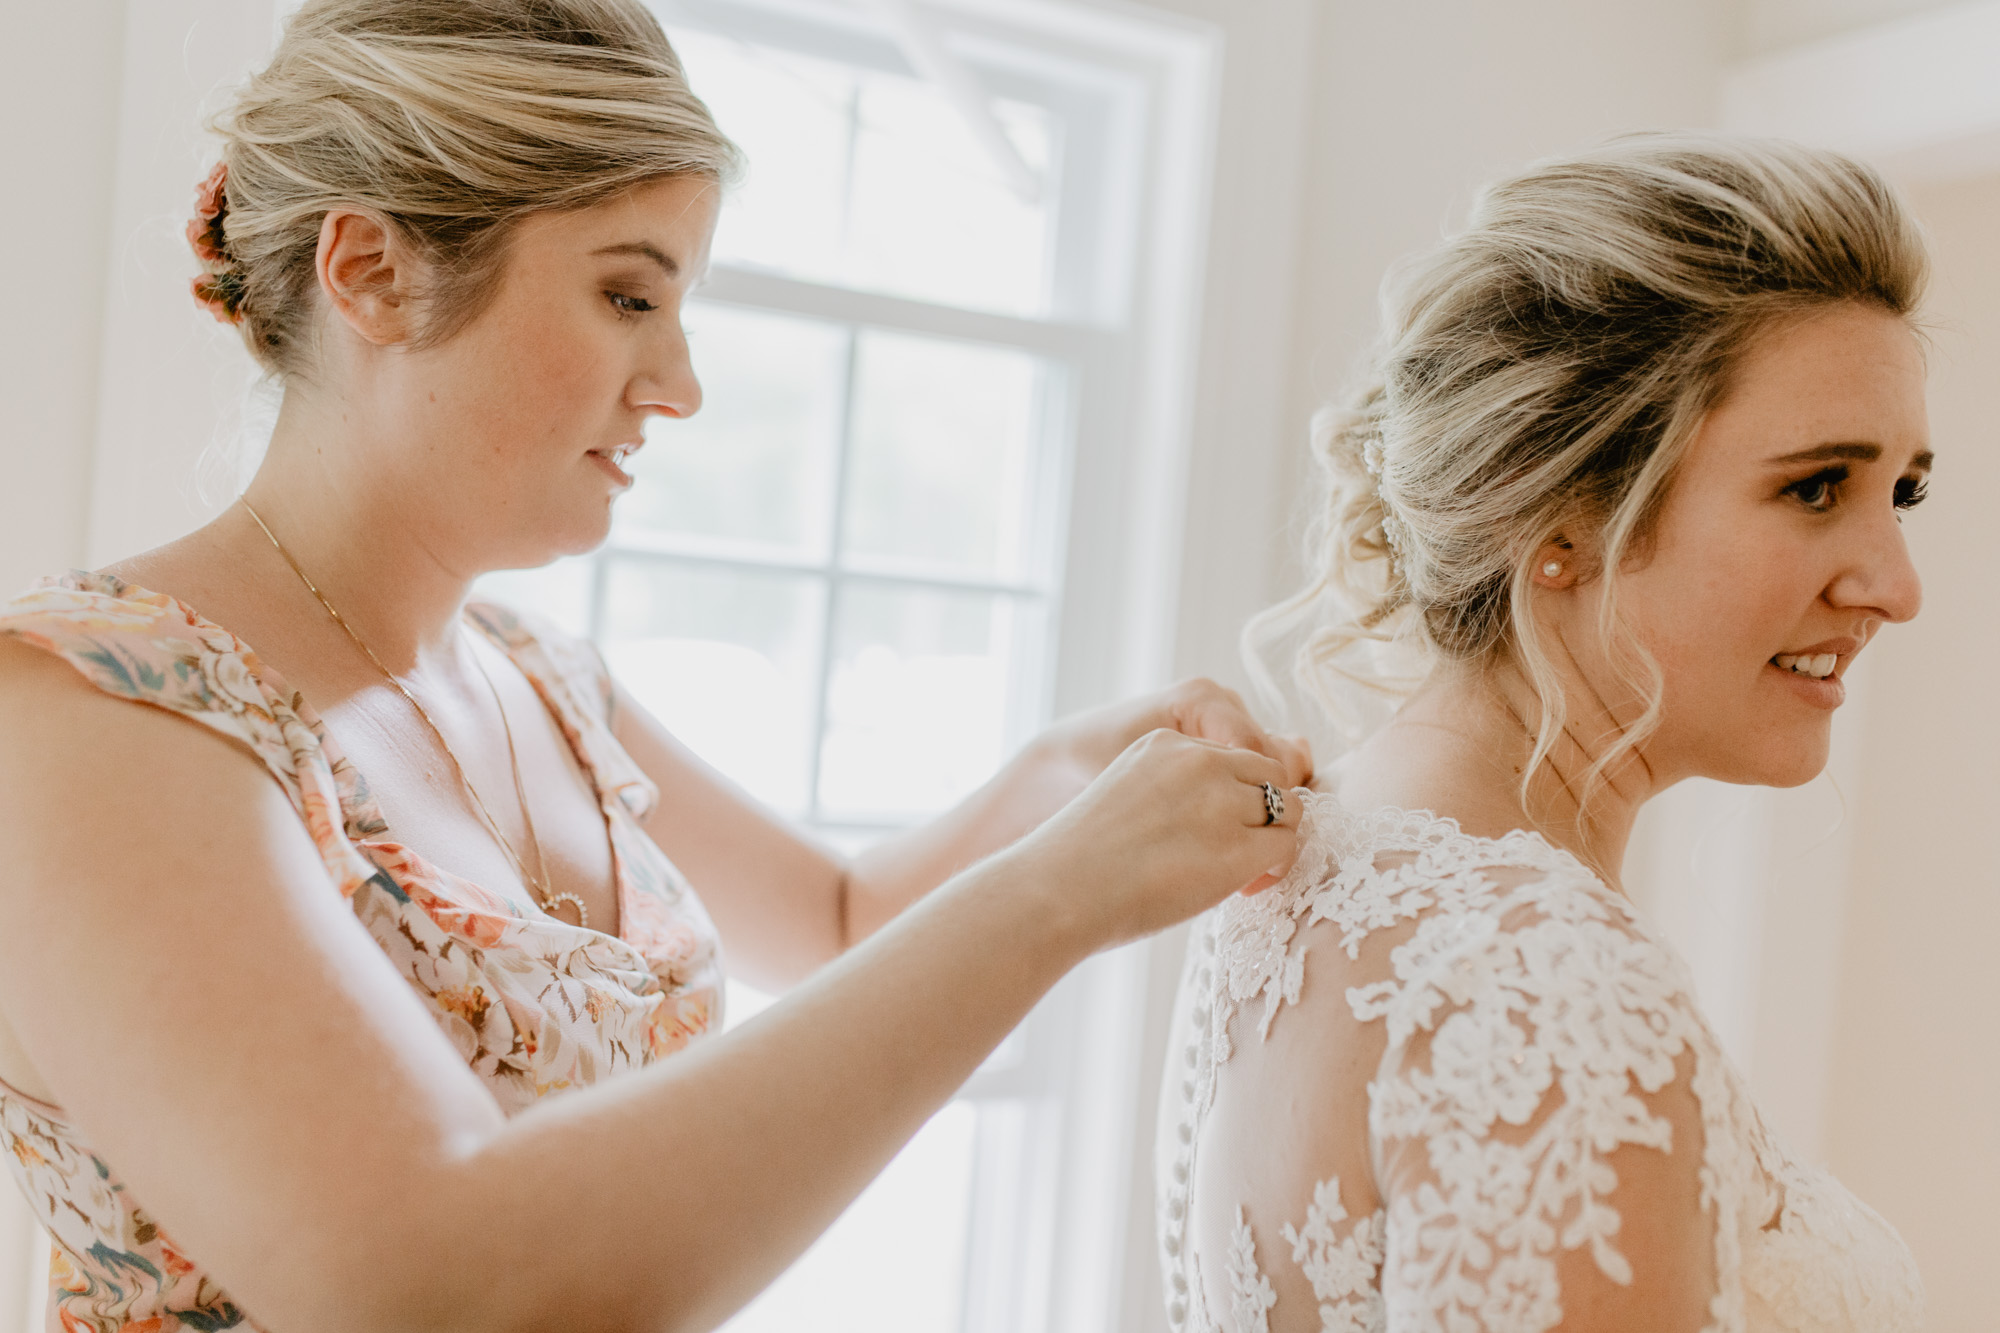 The bride buttons up her wedding dress